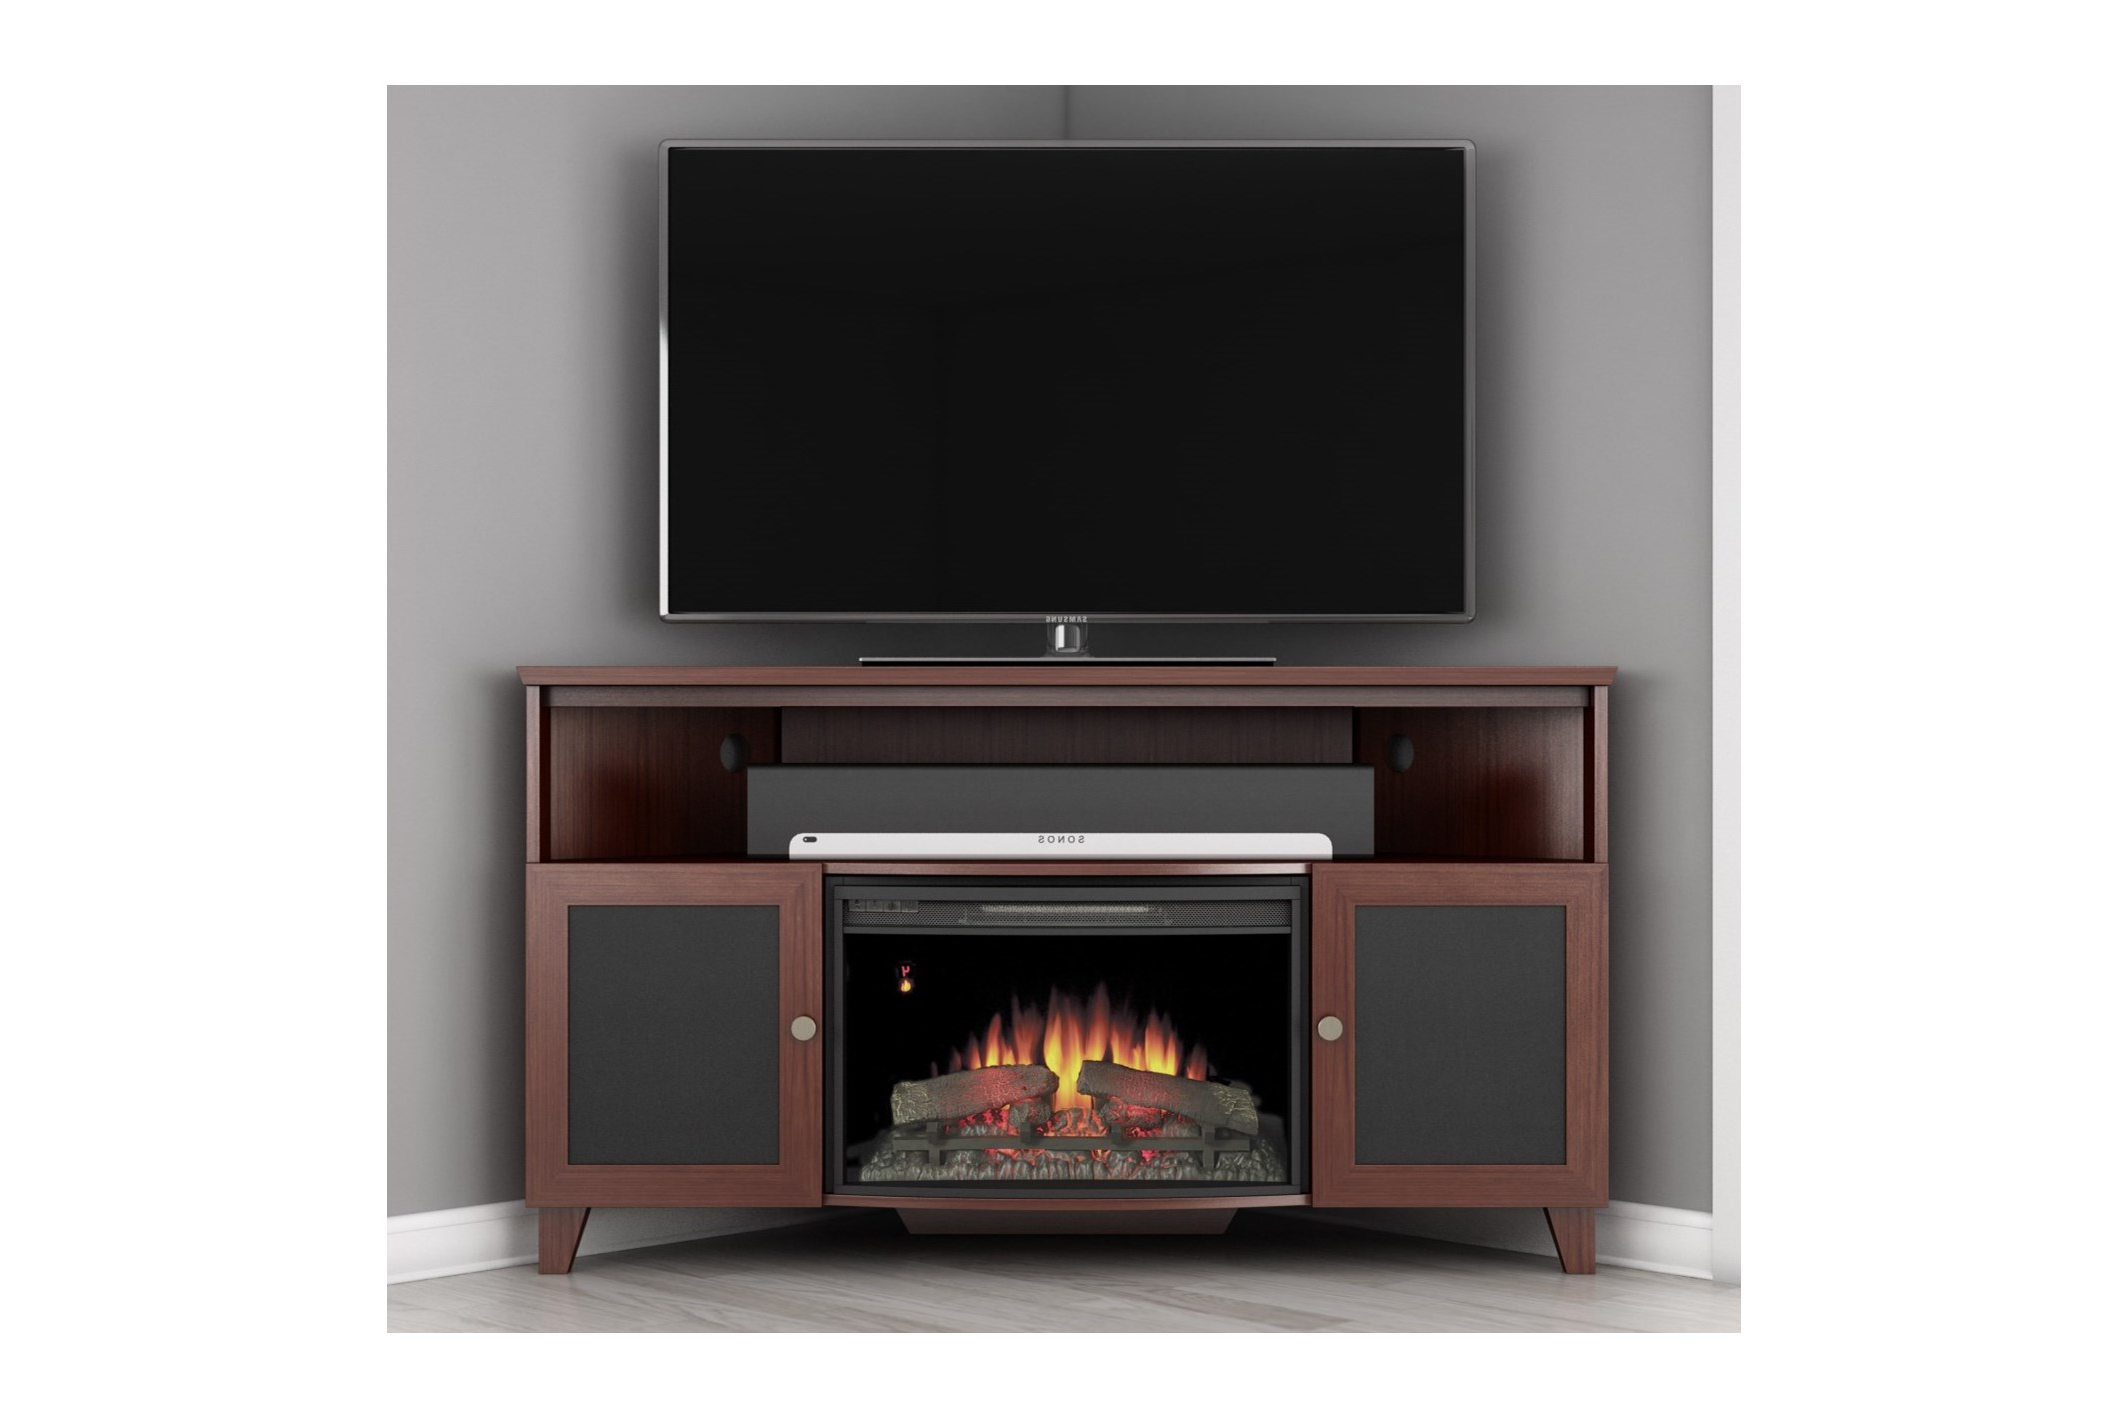 2018 Small Corner Tv Stand For Flat Screen Tv With Fireplace And Square For Square Tv Stands (Gallery 14 of 20)